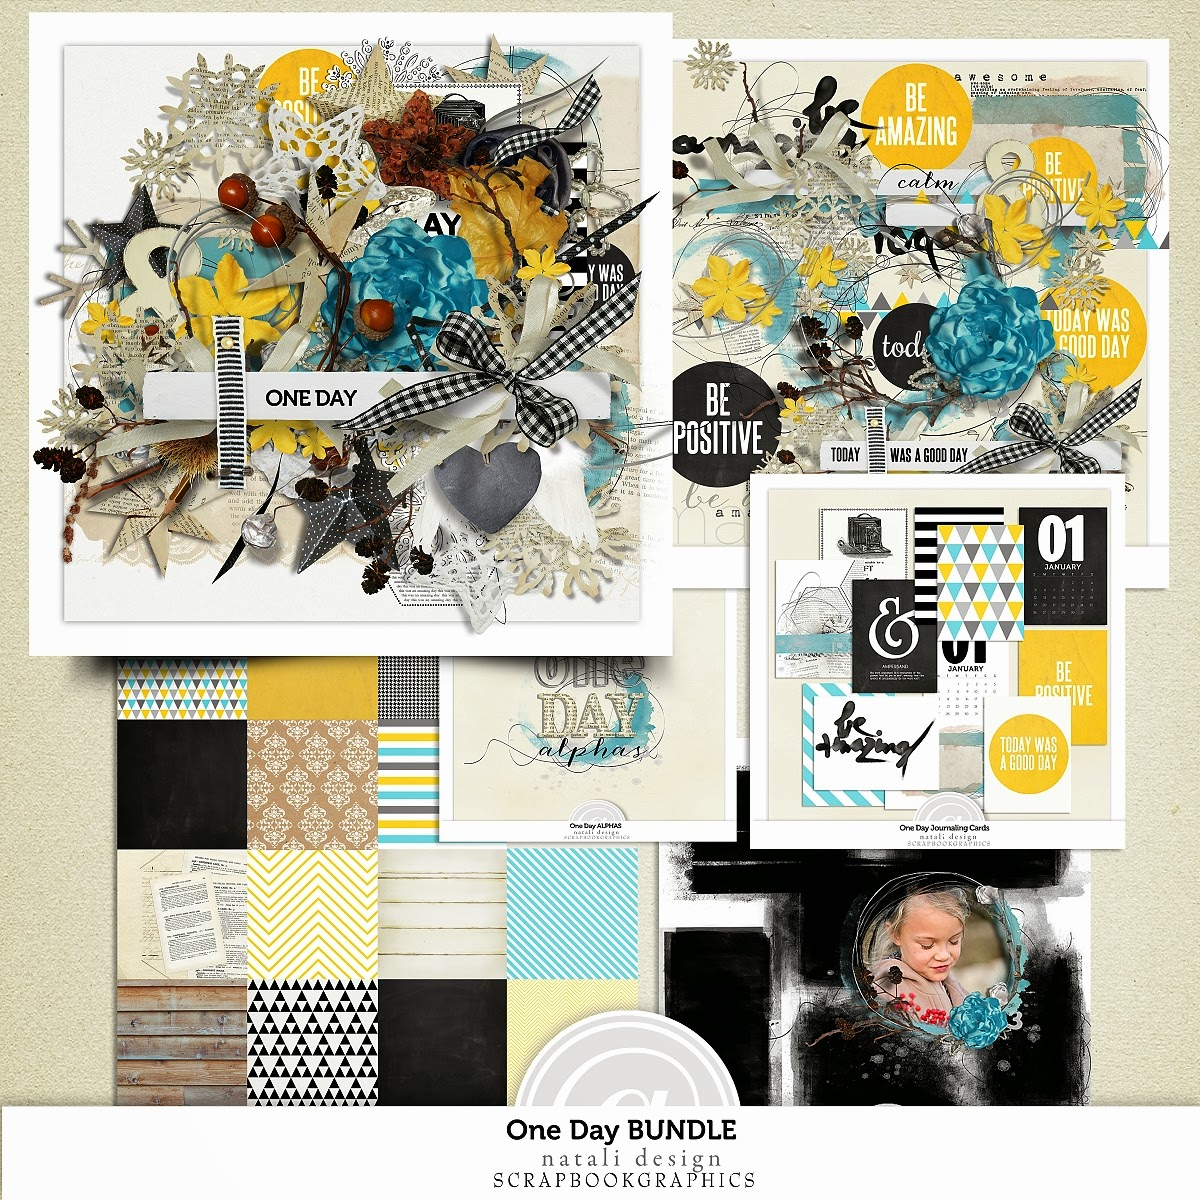 http://shop.scrapbookgraphics.com/One-Day-Bundle.html